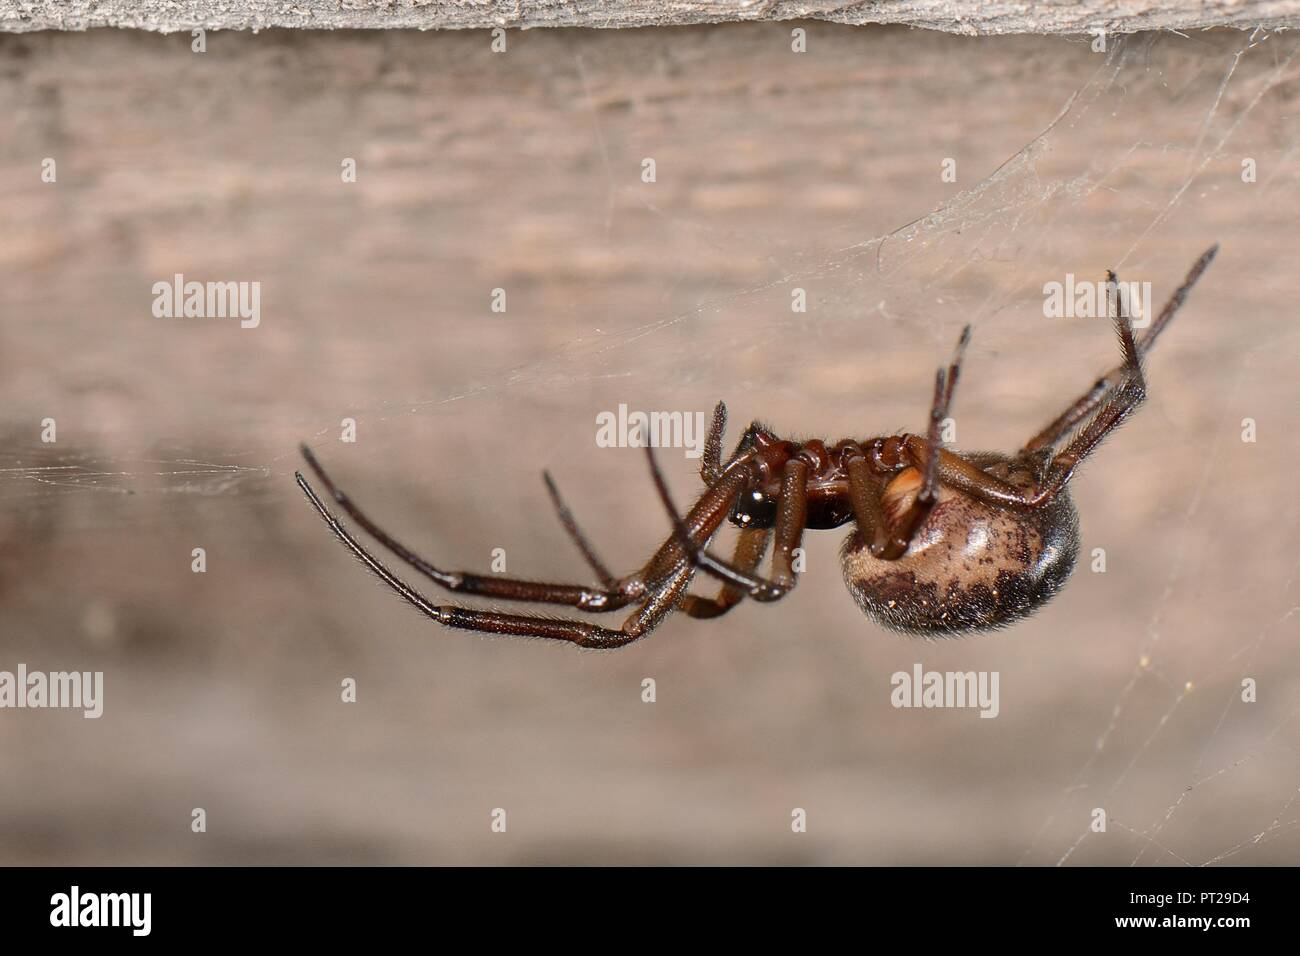 False widow spider / Noble false widow (Steatoda nobilis) female, Britain's most poisonous spider on its web in a wood shed, Near Wells, Somerset, UK. - Stock Image